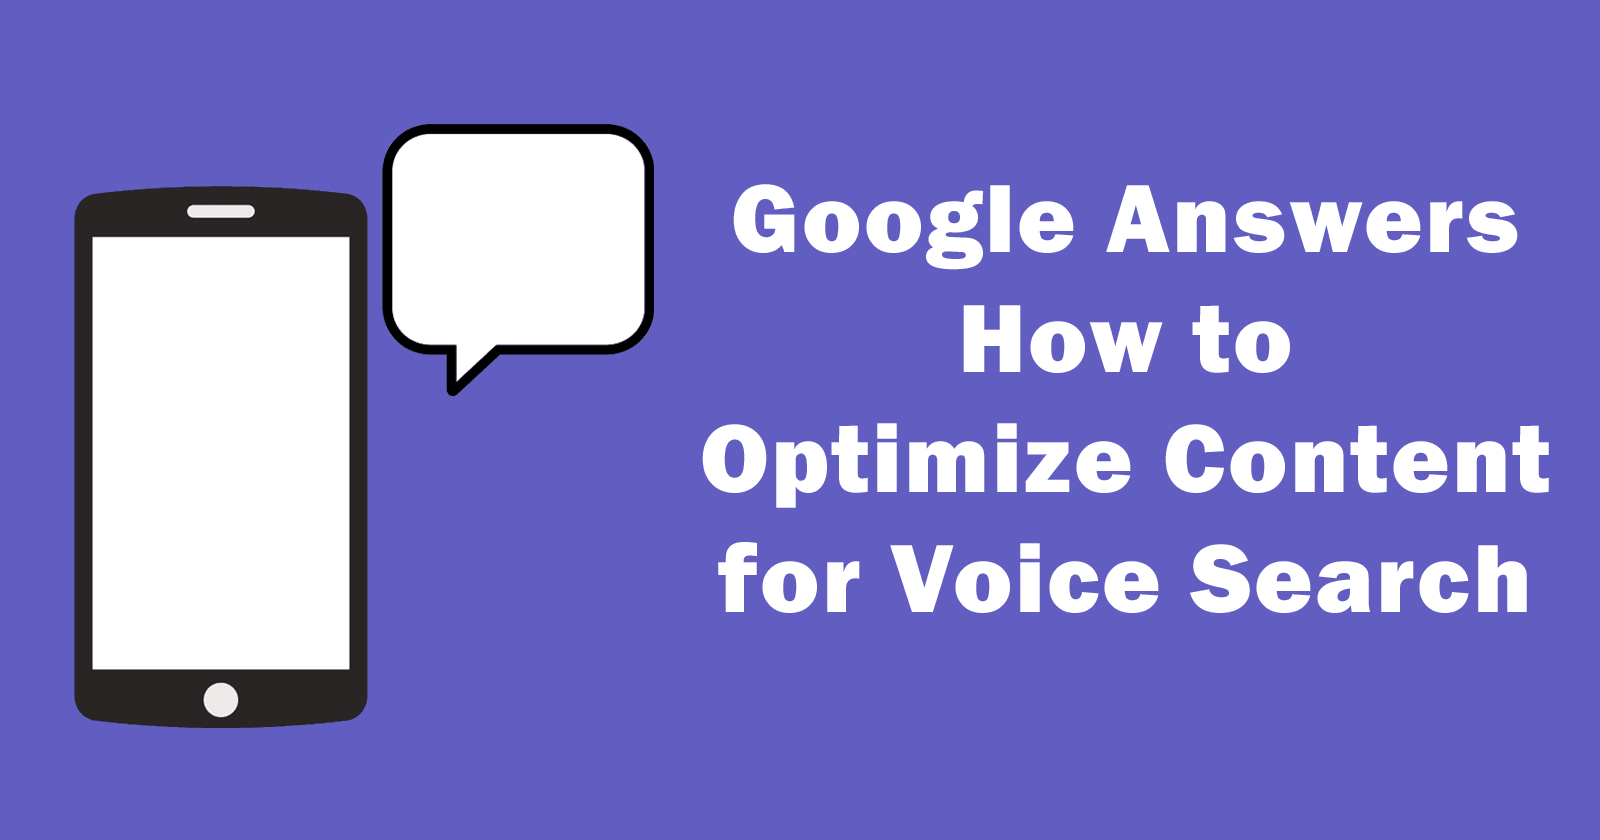 Google Answers How to Optimize Content for Voice Search by @martinibuster